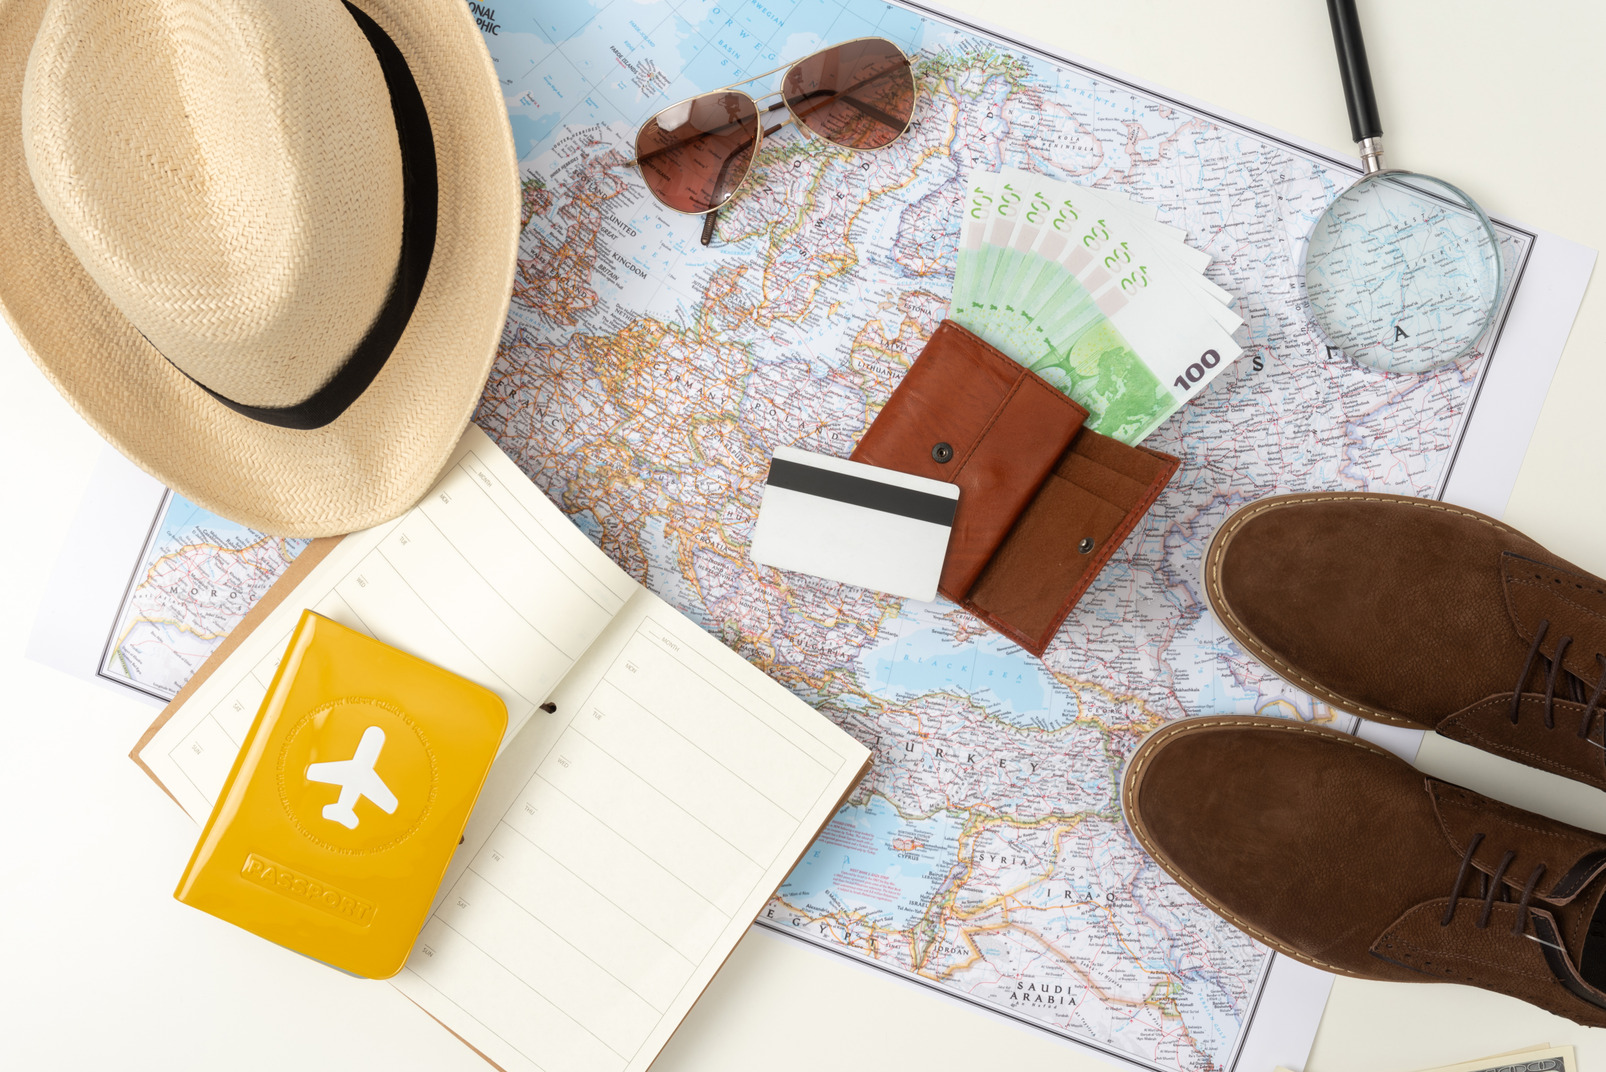 Sunglasses, straw hat, boots, smartphone, international passport and a map with a tourist route lying around the only thing that can replace them all: money